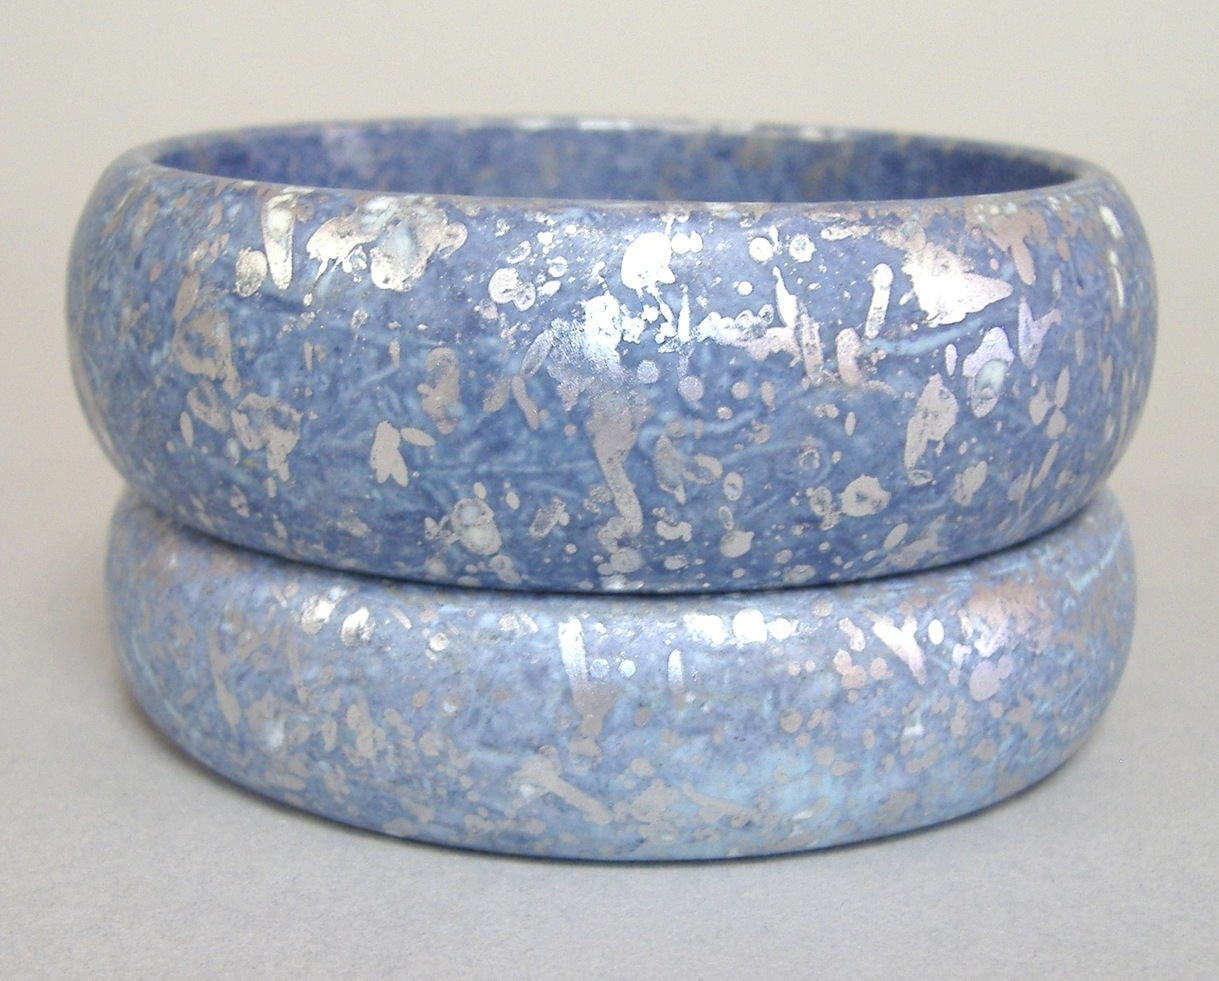 Bracelet Blue Silver Painted Wood Bangle Set of 2 Pair Jewelry